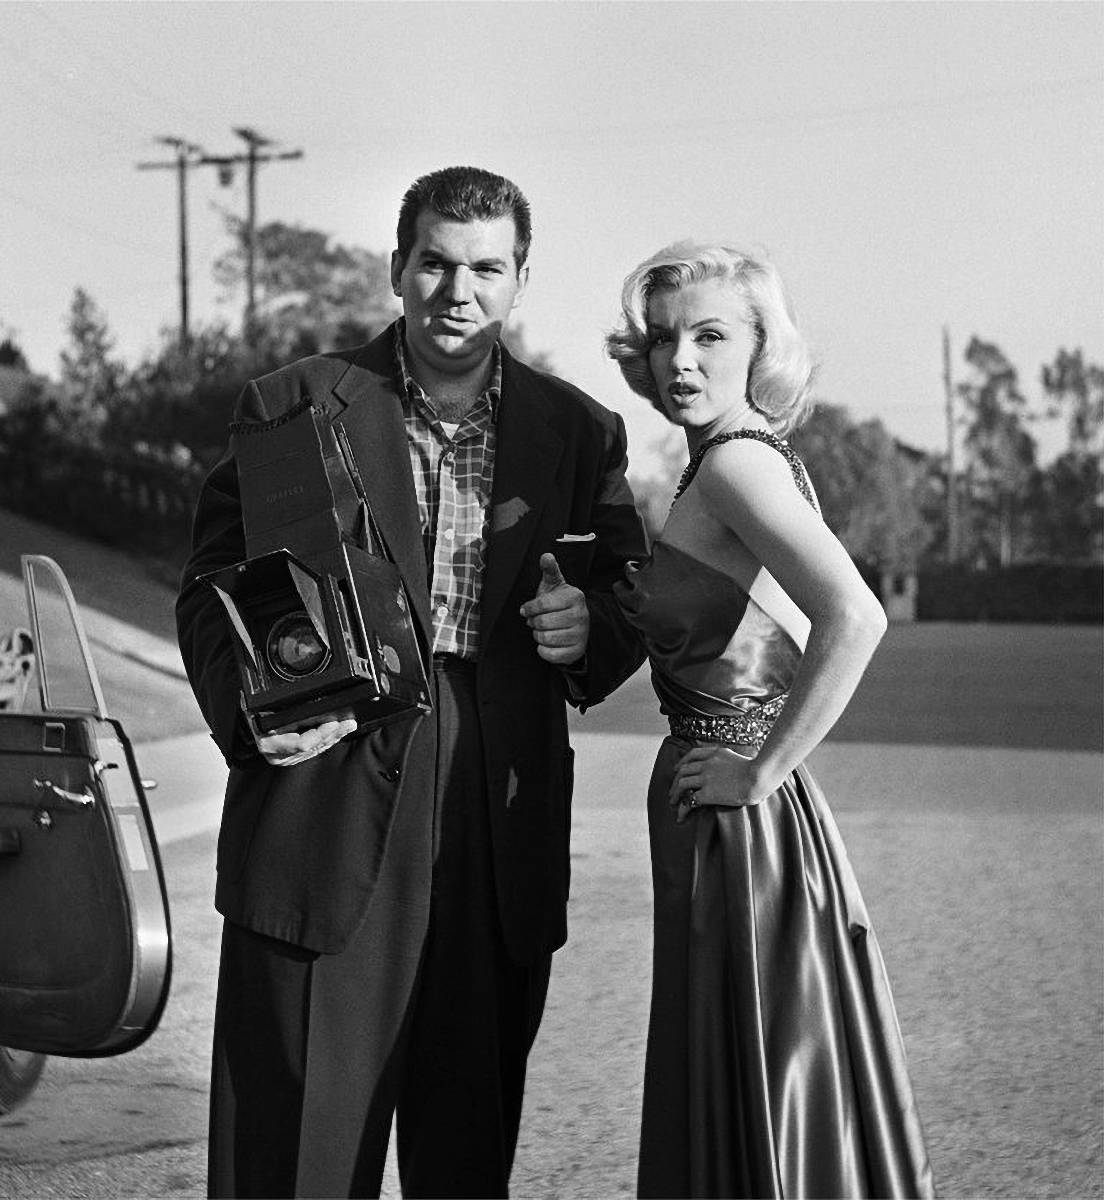 Frank Worth and Marilyn Monroe